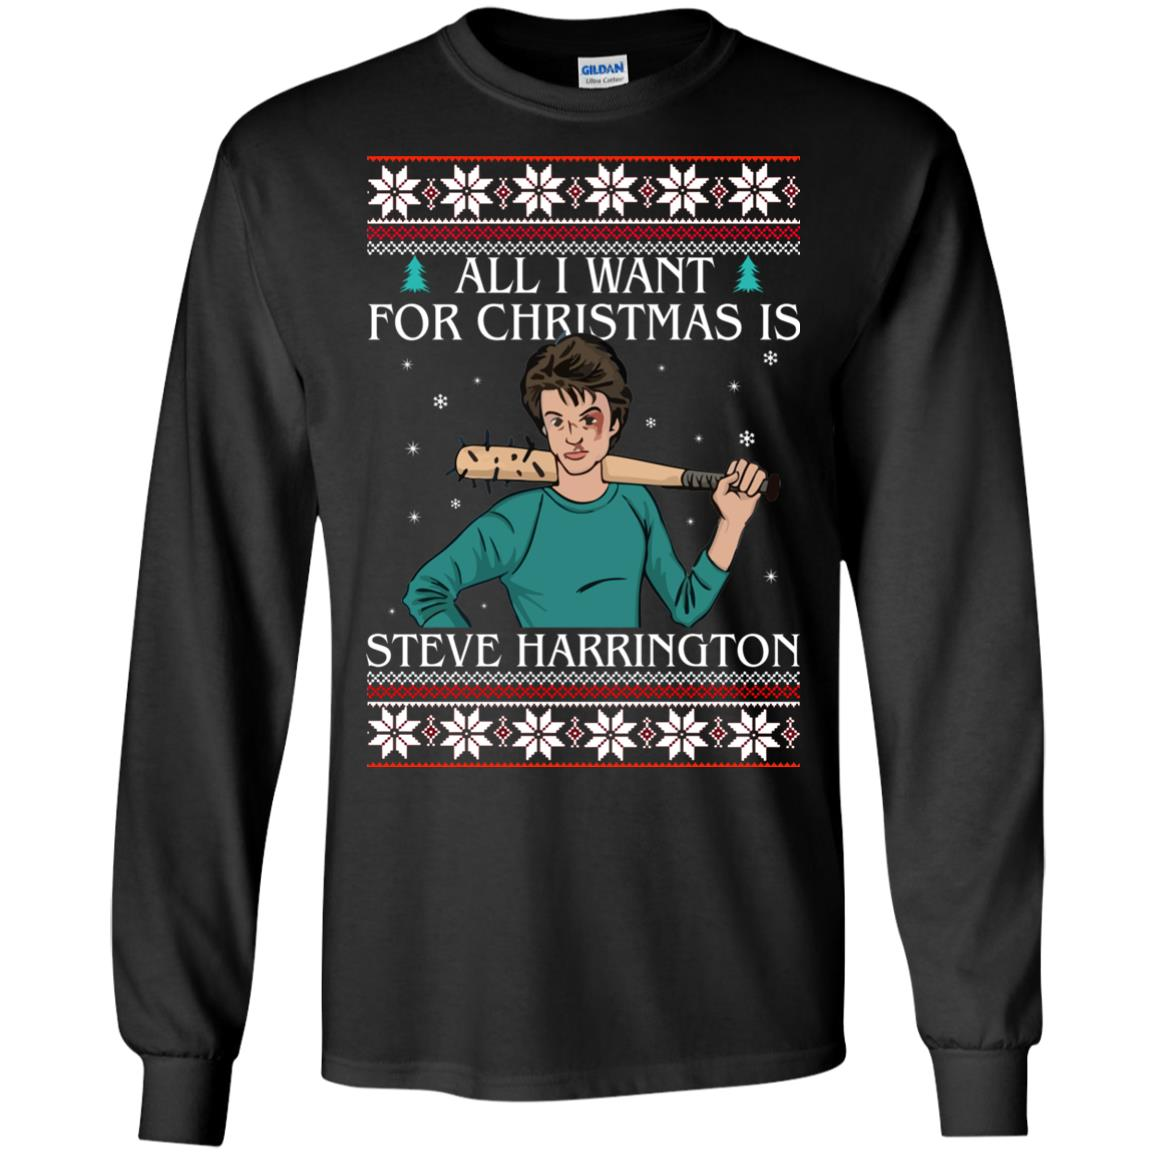 image 4028 - All I want for Christmas is Steve Harrington Ugly Sweater